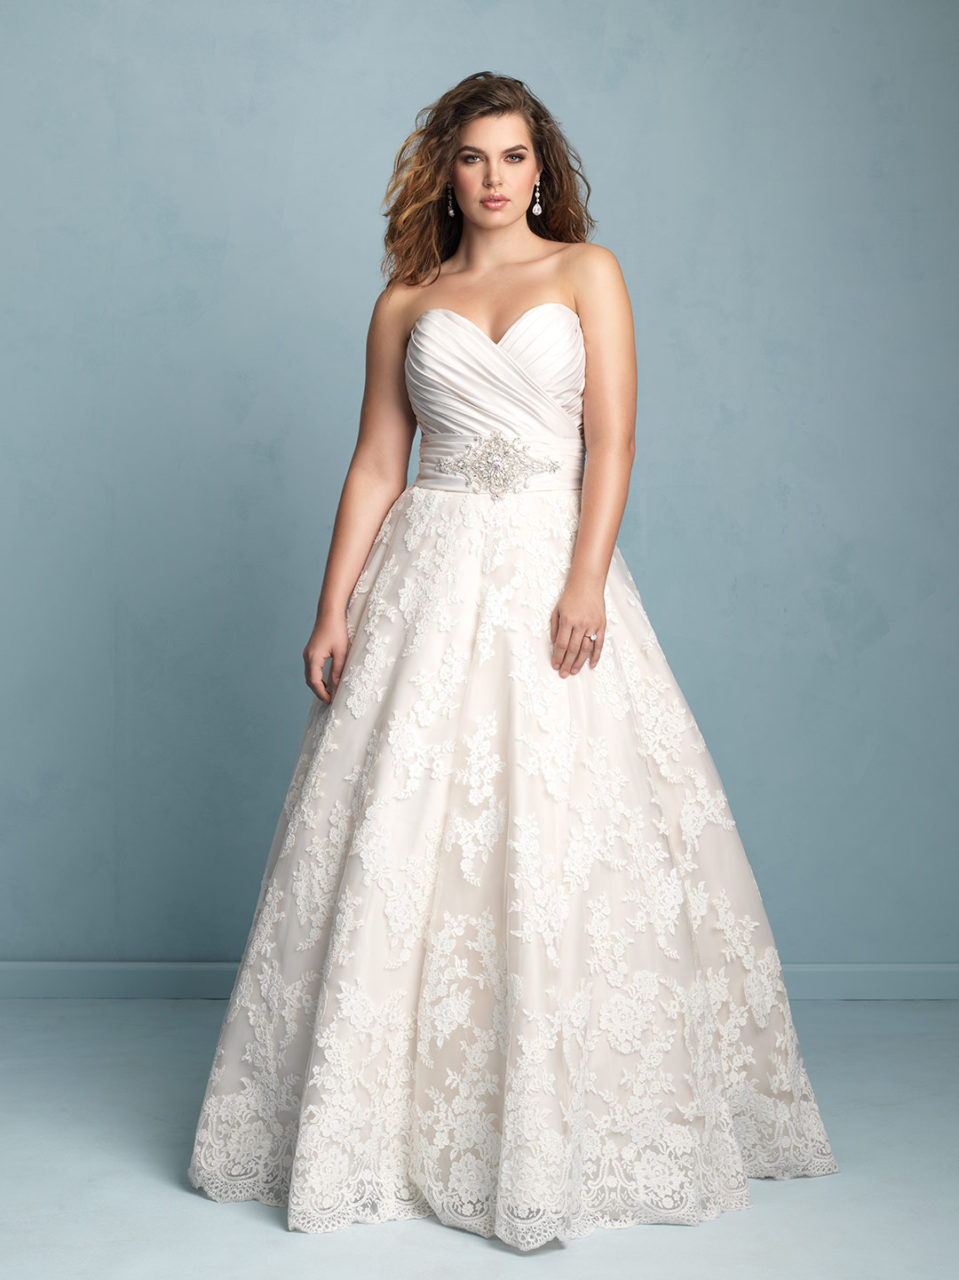 20 Amazing Plus Size Wedding Dresses